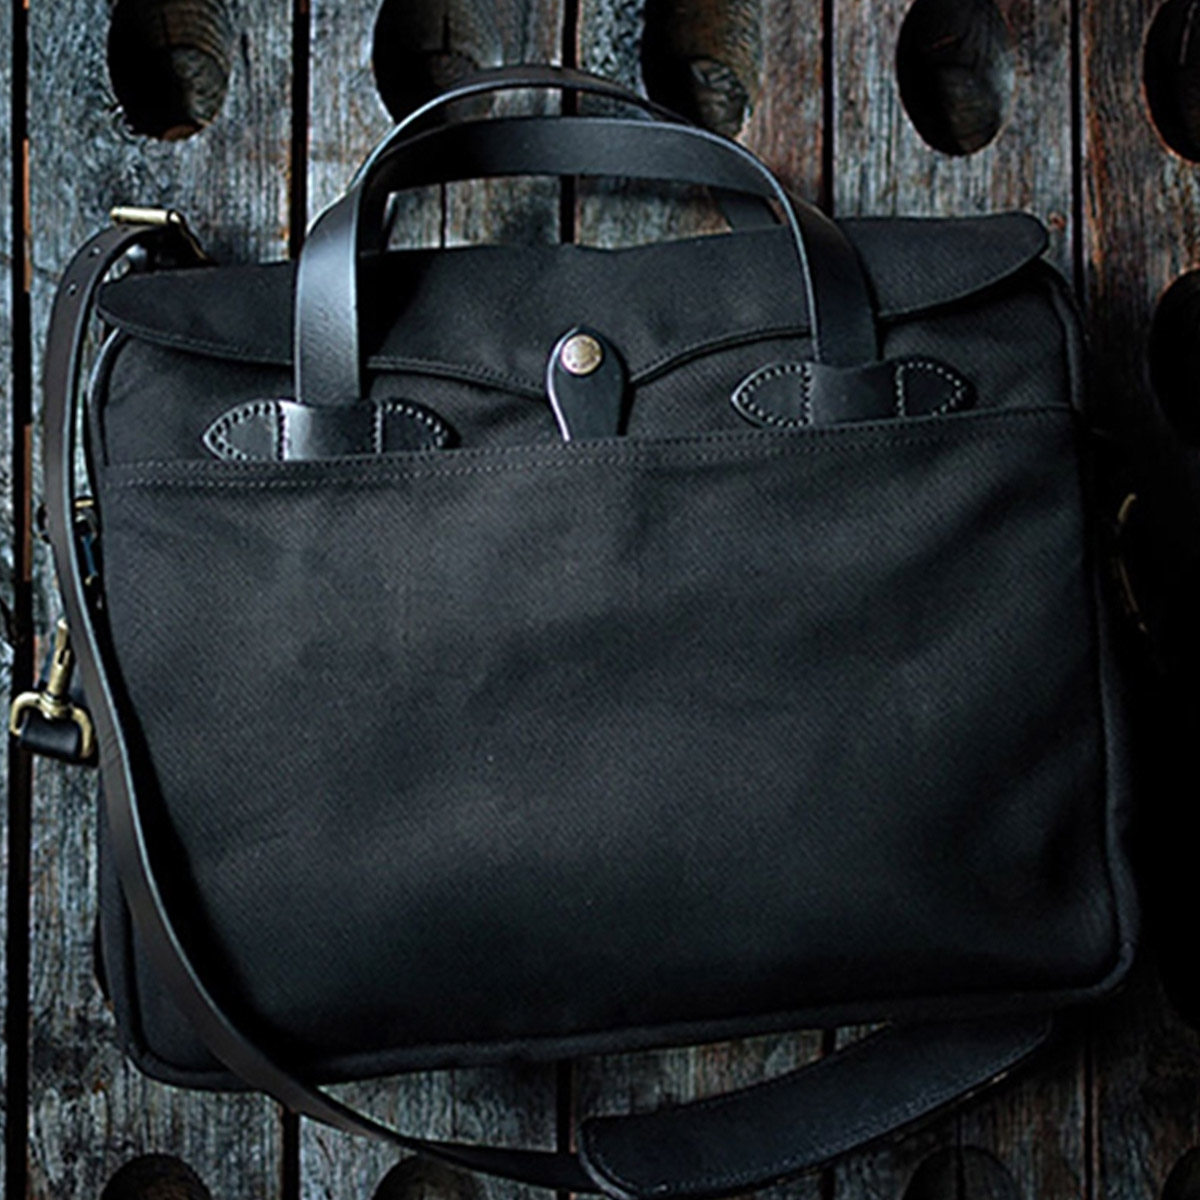 Filson Original Briefcase 11070256 Black extraordinary bag for an ordinary day